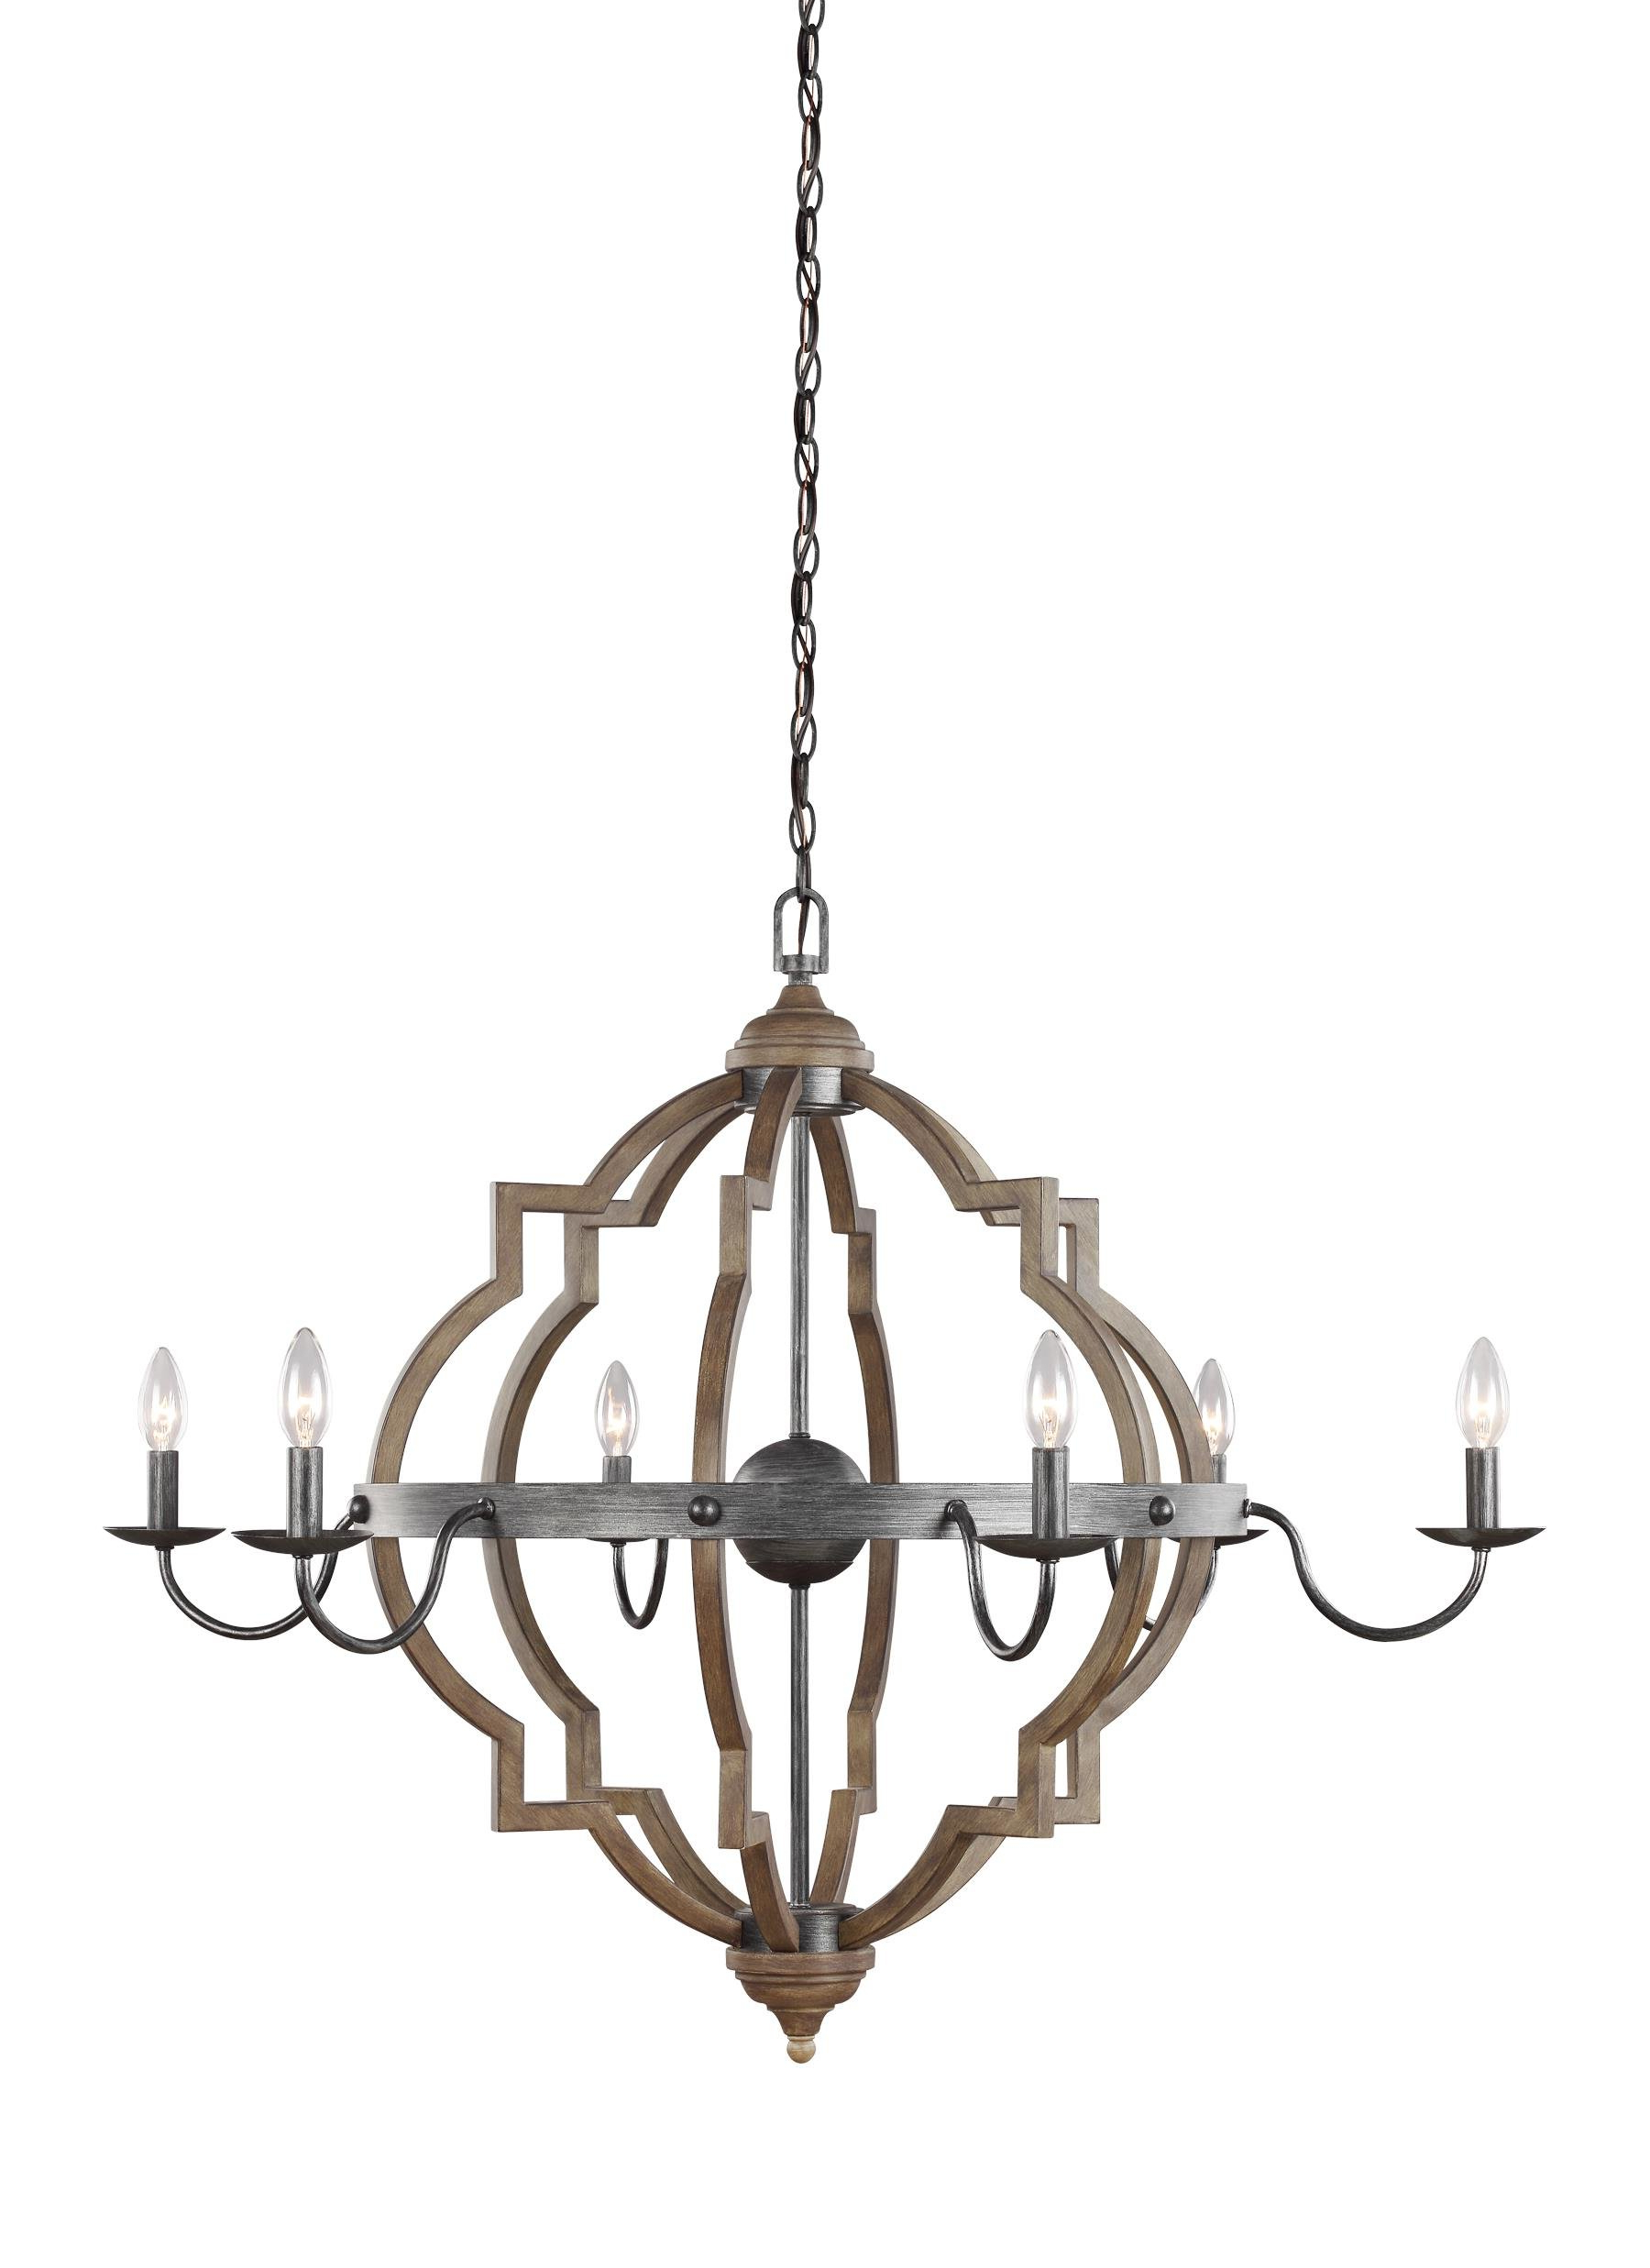 Donna 6 Light Globe Chandeliers For Well Known Donna 6 Light Candle Style Chandelier & Reviews (View 4 of 20)